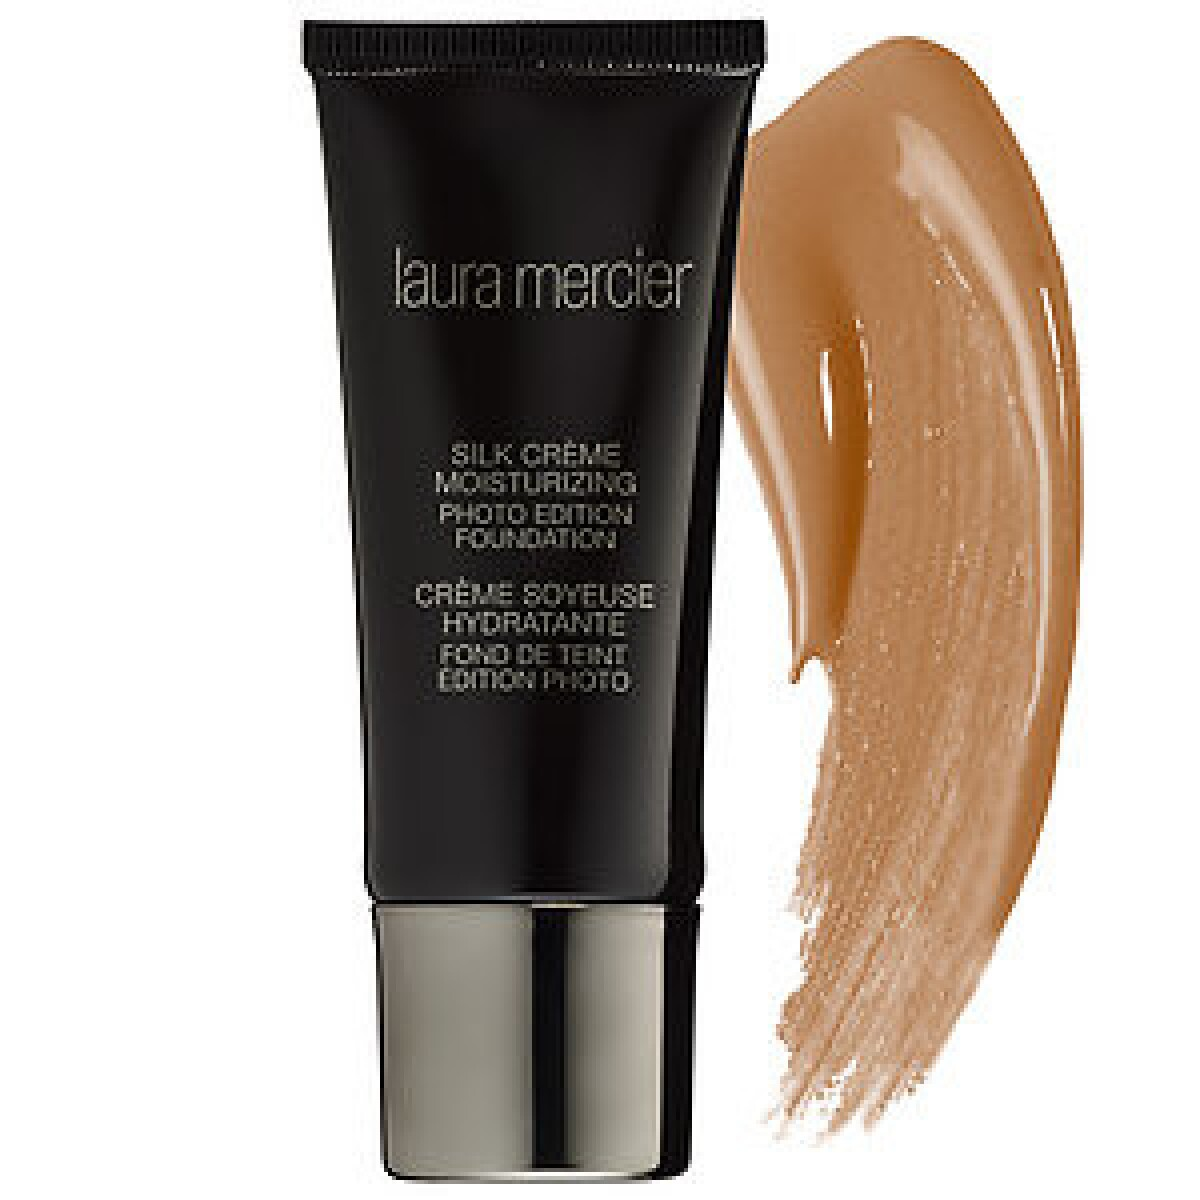 Try Foundation Makeup to Cover Age Spots